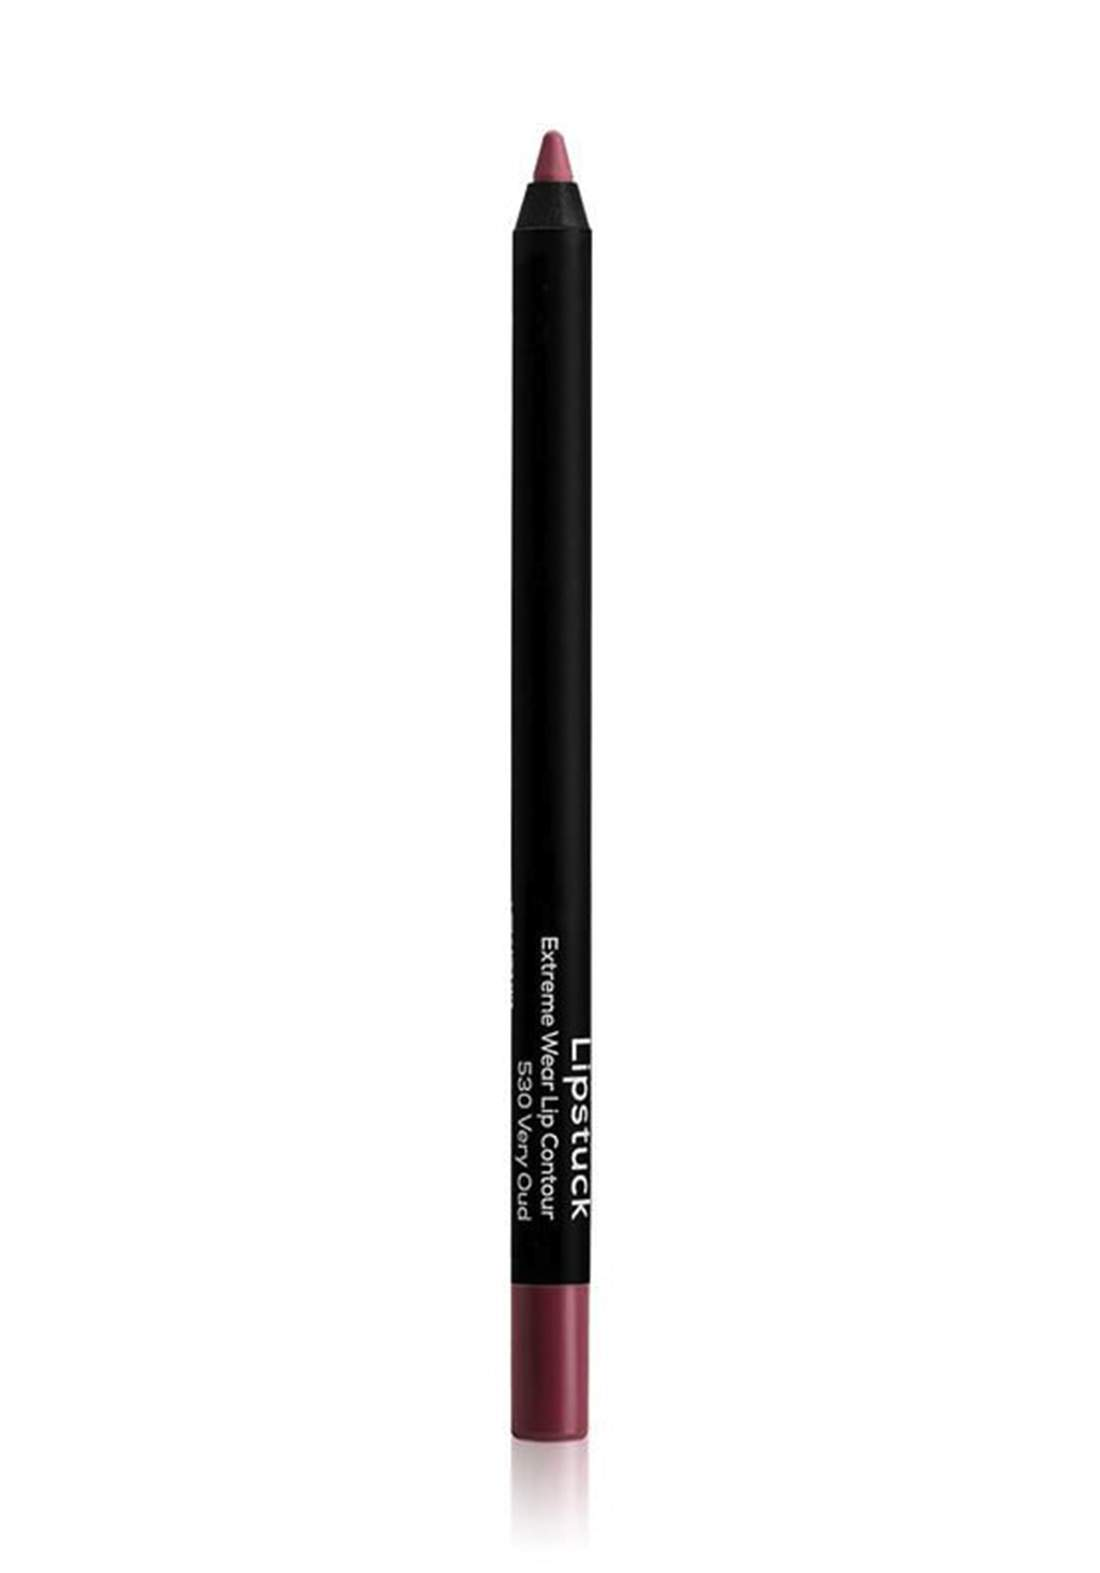 Wow By Wojooh W530 Lipstuck Extreme Wear Lip Contour No.530 Very Oud 1.20g محدد الشفاه